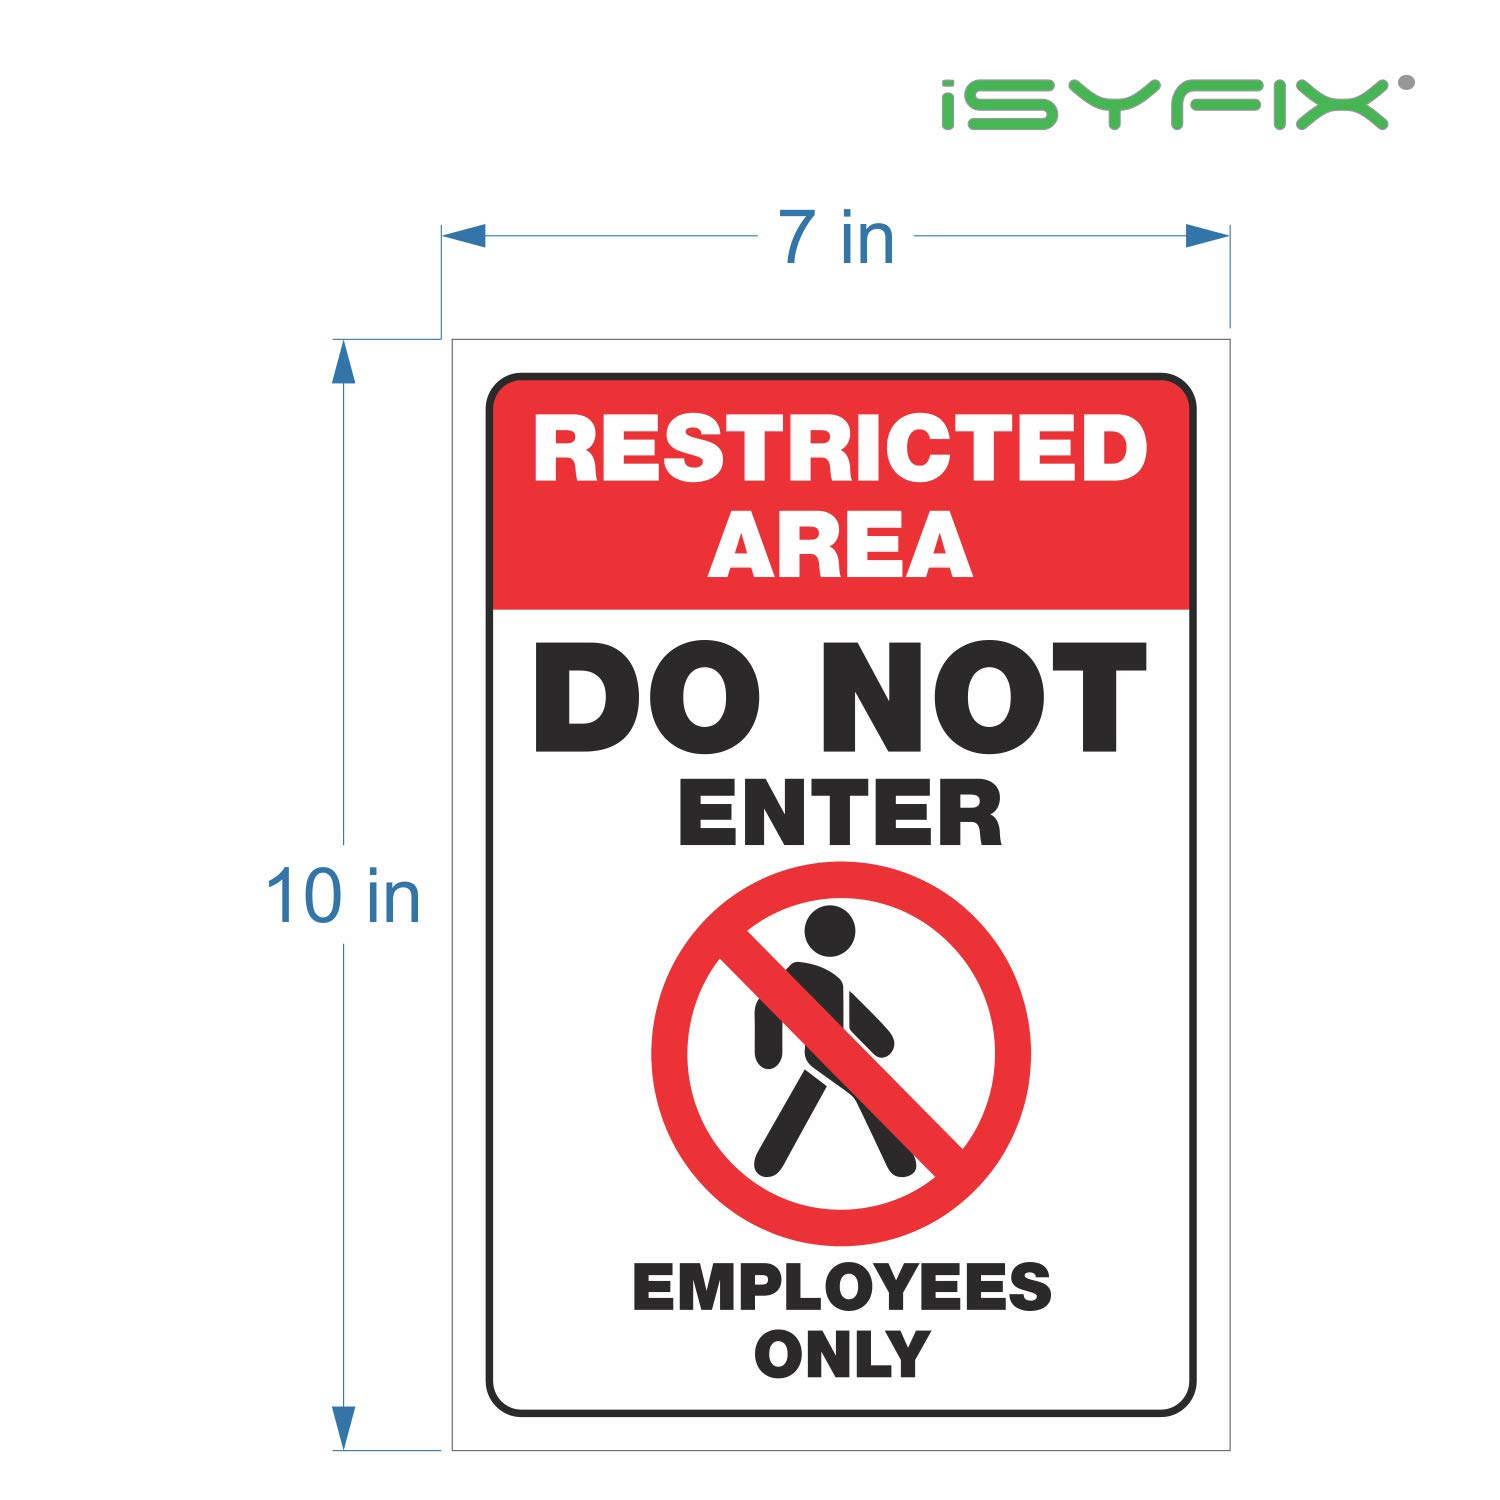 Restricted area do not enter employees only signs stickers 2 pack 7x10 inch premium self adhesive vinyl laminated for uv weather scratch